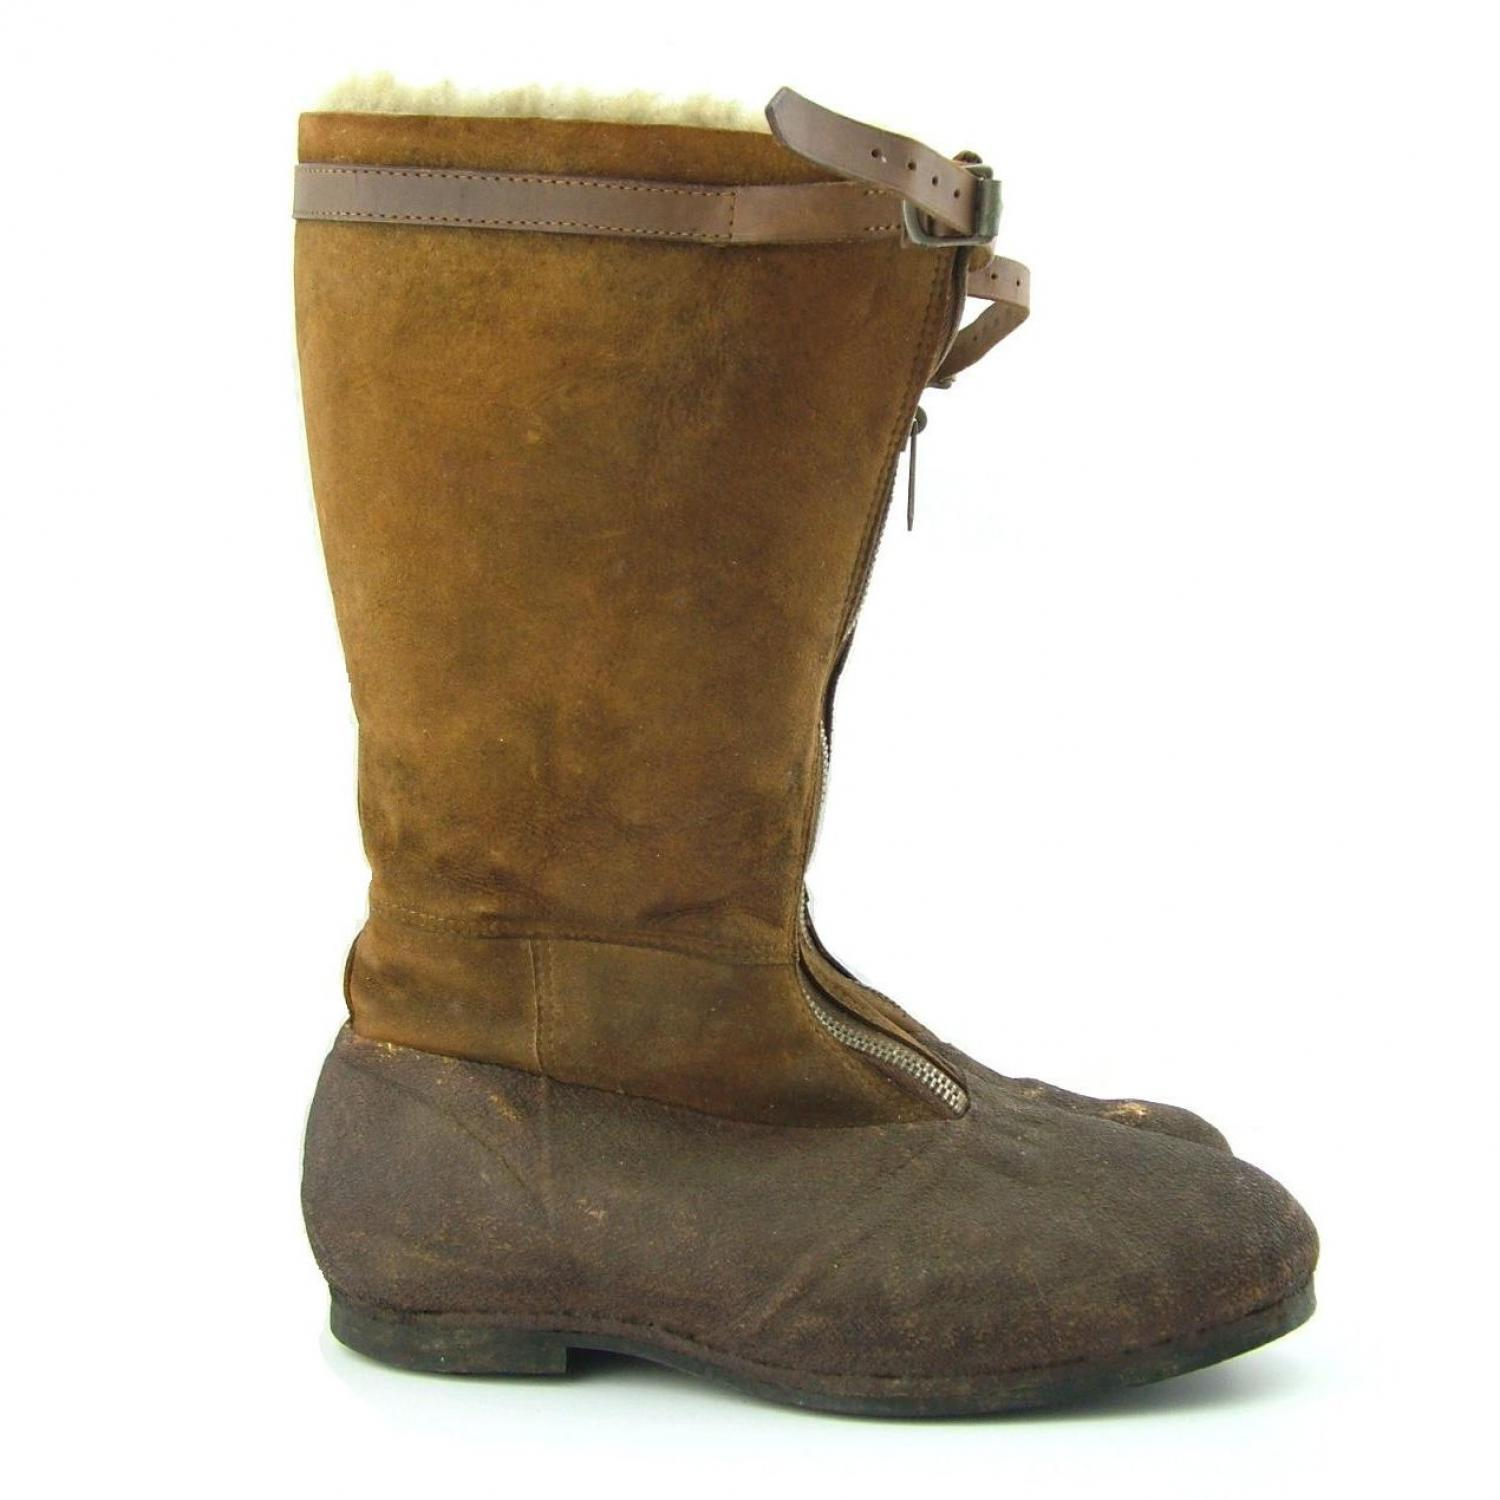 RAF 1930 Pattern Flying Boots